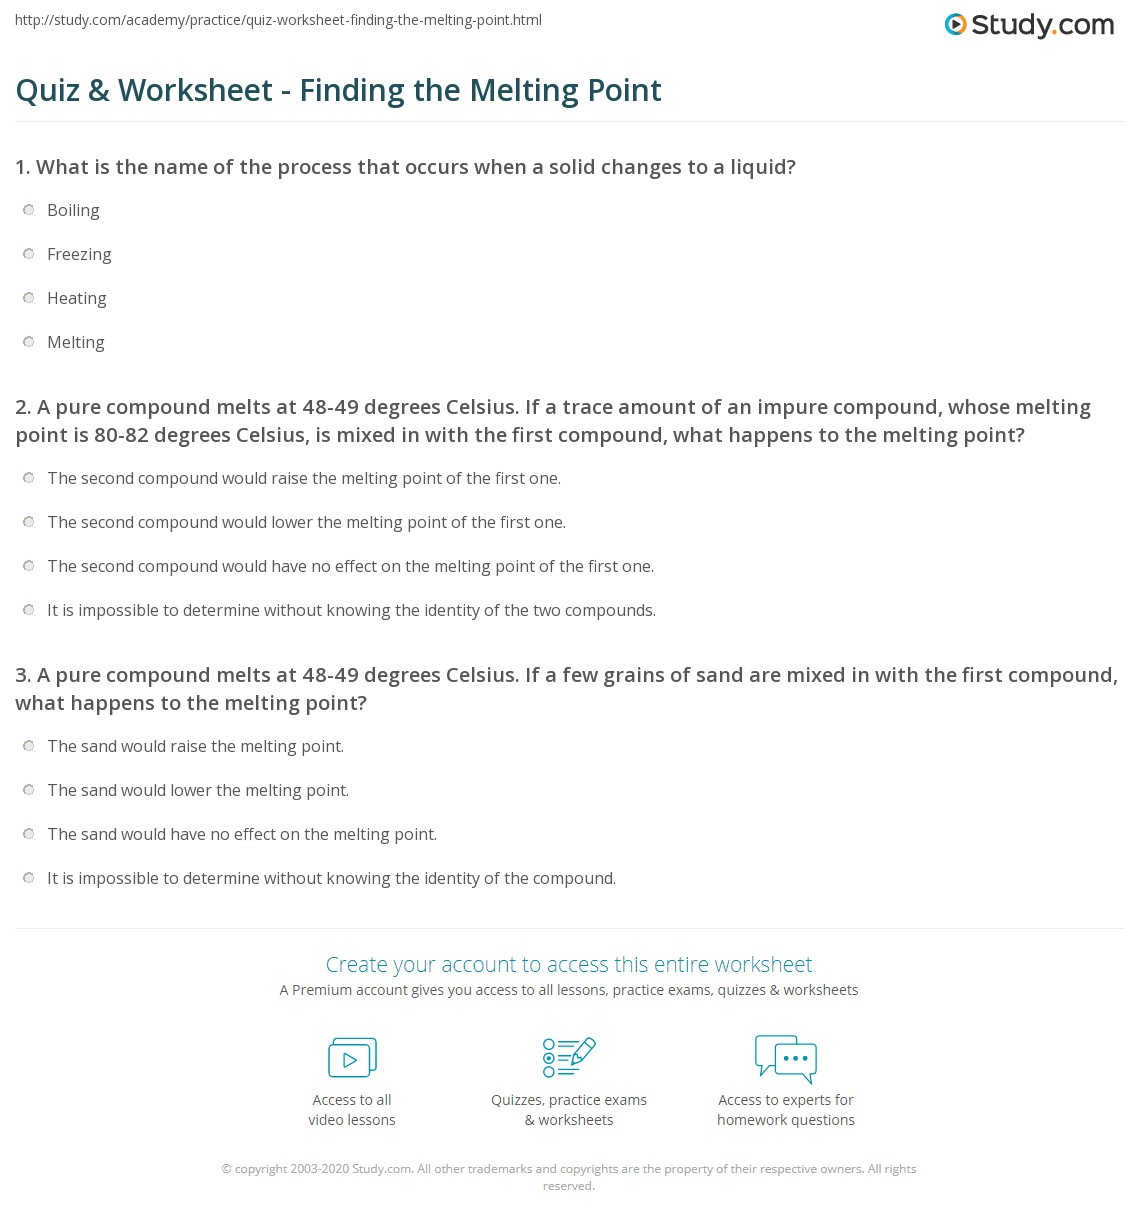 Quiz worksheet finding the melting point study if a trace amount of an impure compound whose melting point is 80 82 degrees celsius is mixed in with the first compound gamestrikefo Gallery